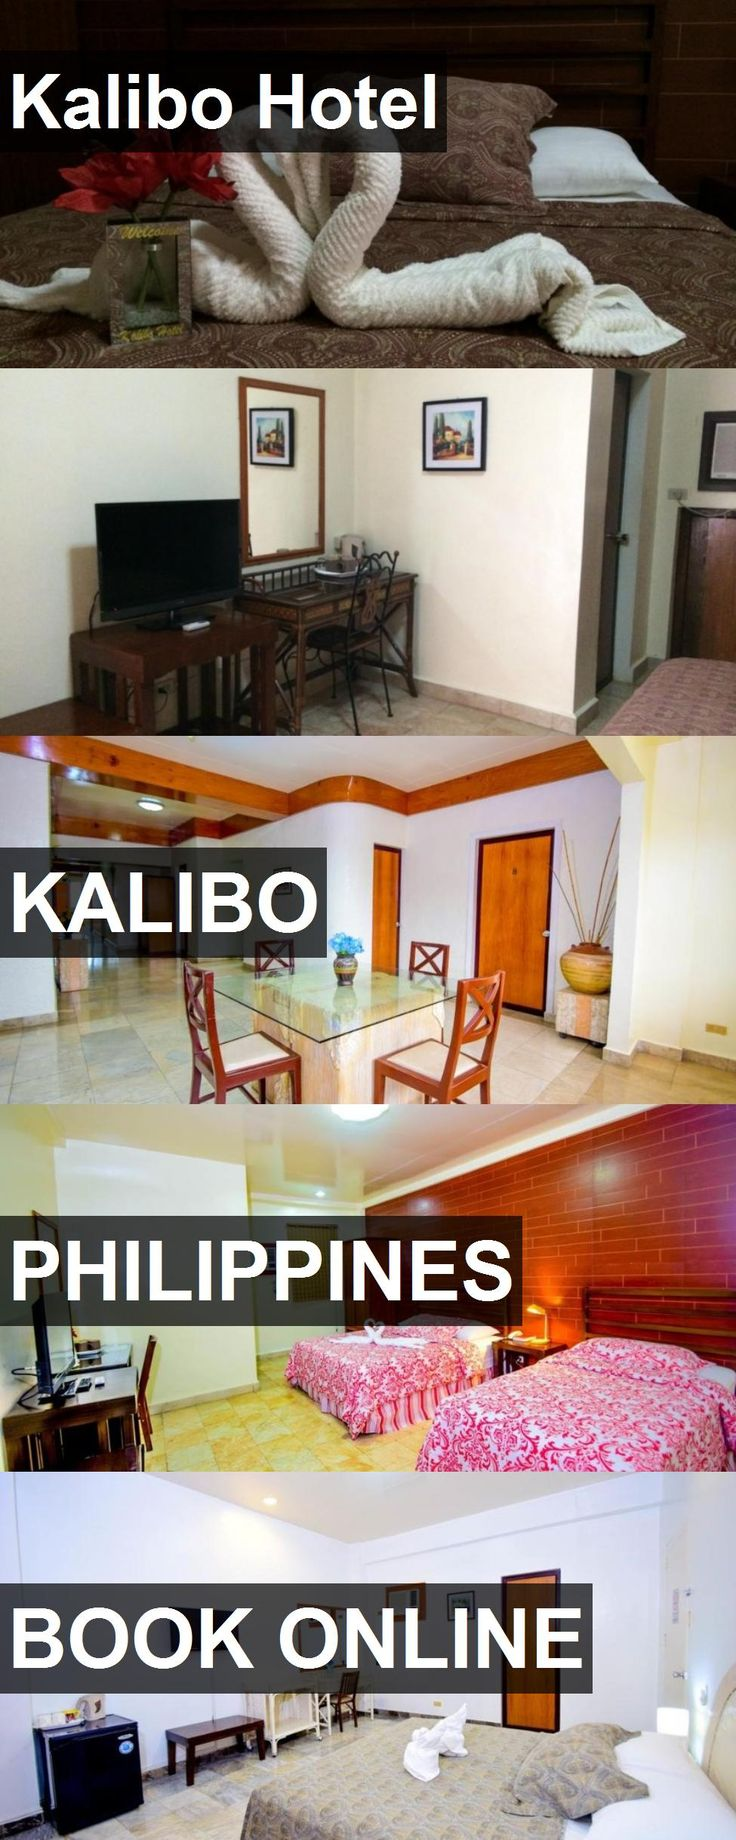 Hotel Kalibo Hotel in Kalibo, Philippines. For more information, photos, reviews and best prices please follow the link. #Philippines #Kalibo #KaliboHotel #hotel #travel #vacation